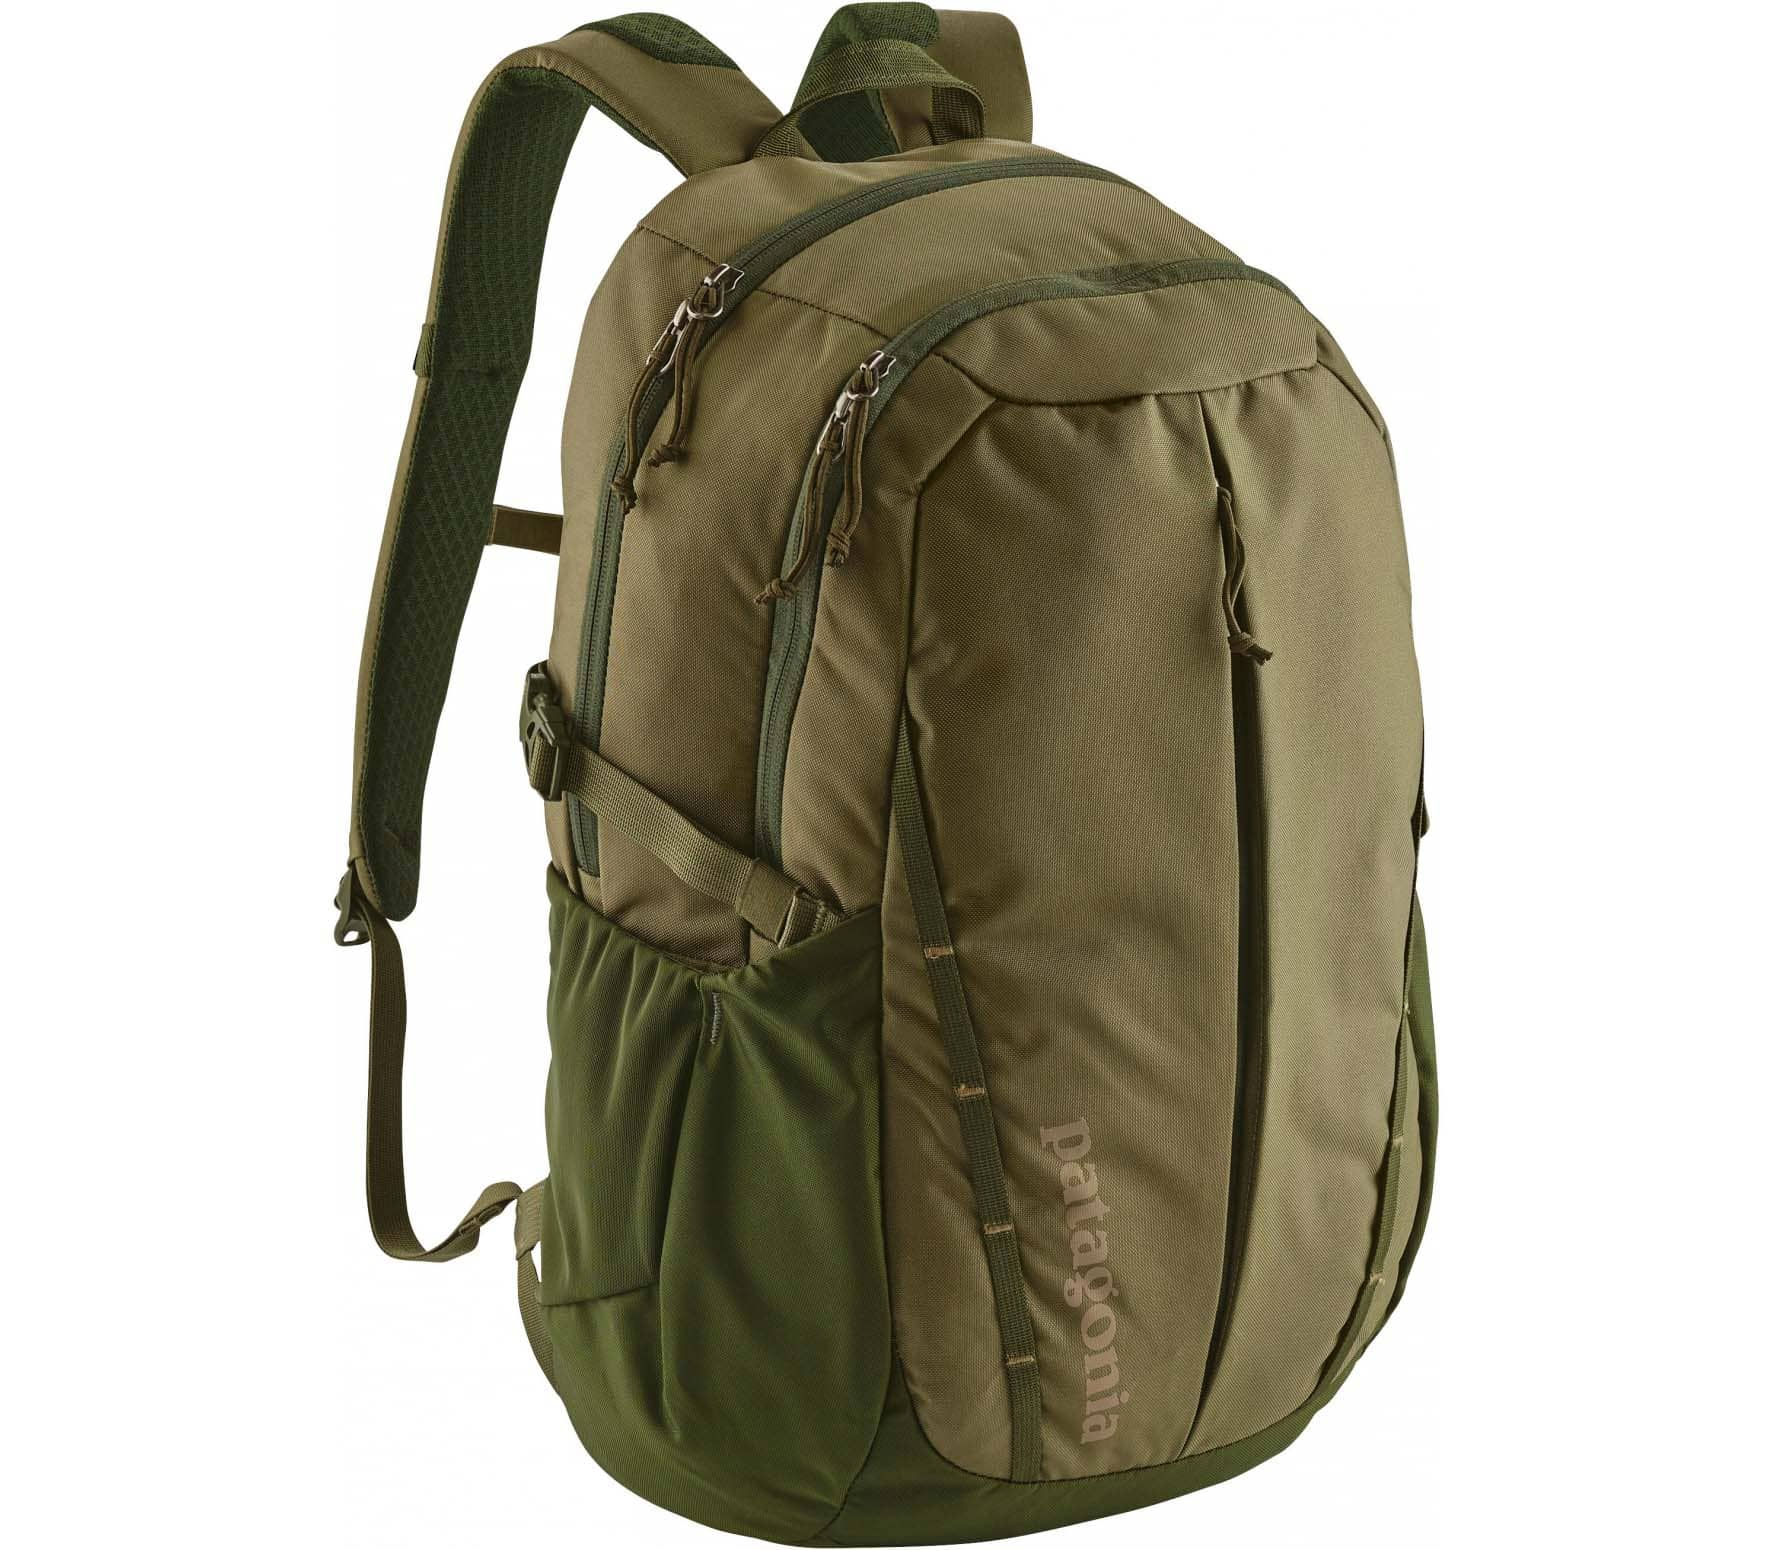 Patagonia Refugio Pack 28L Unisex Backpack green